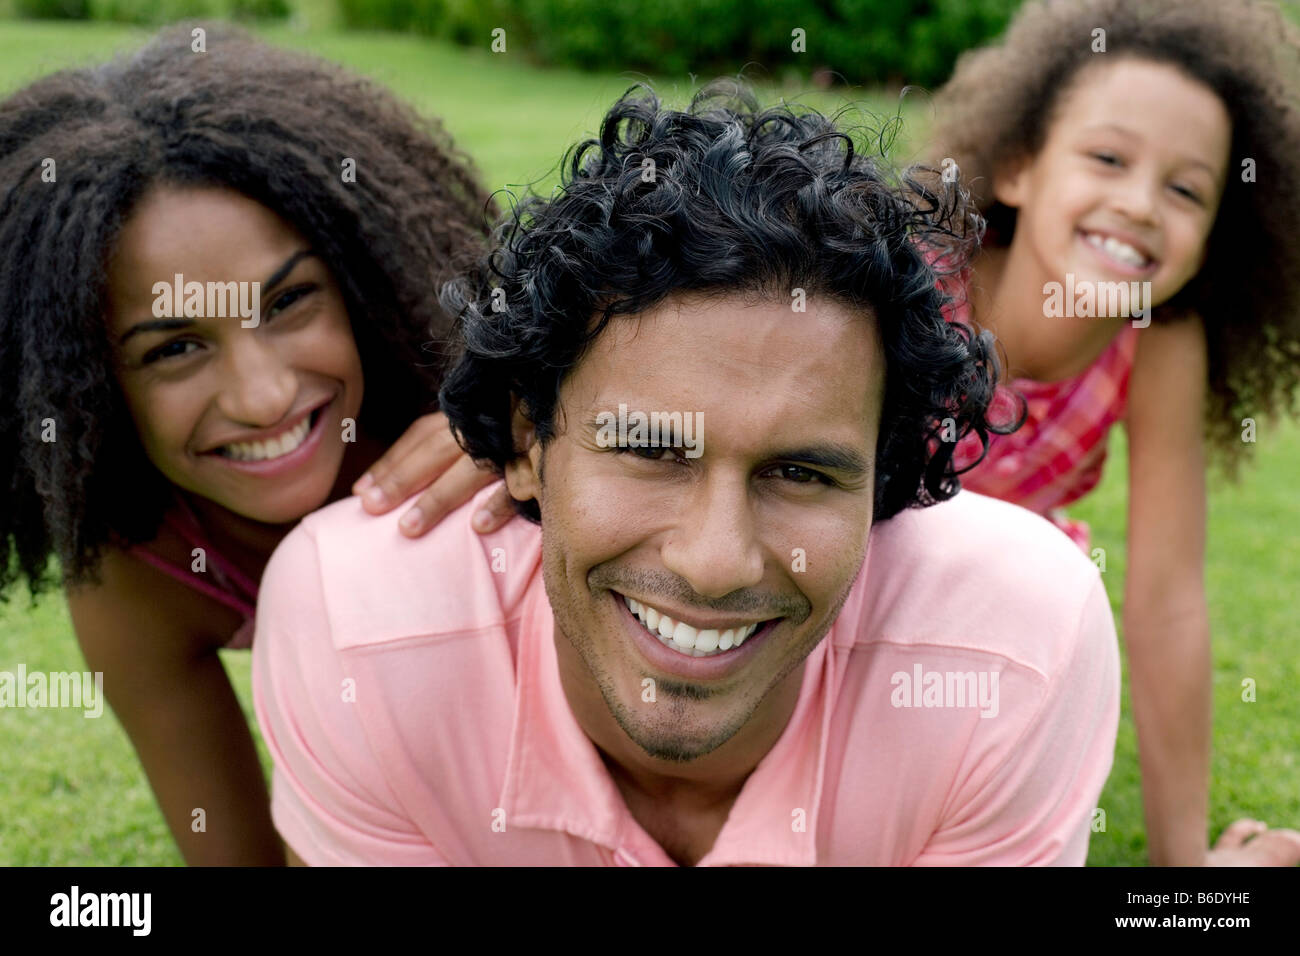 Happy family. Parents with their daughter on the grass. Stock Photo